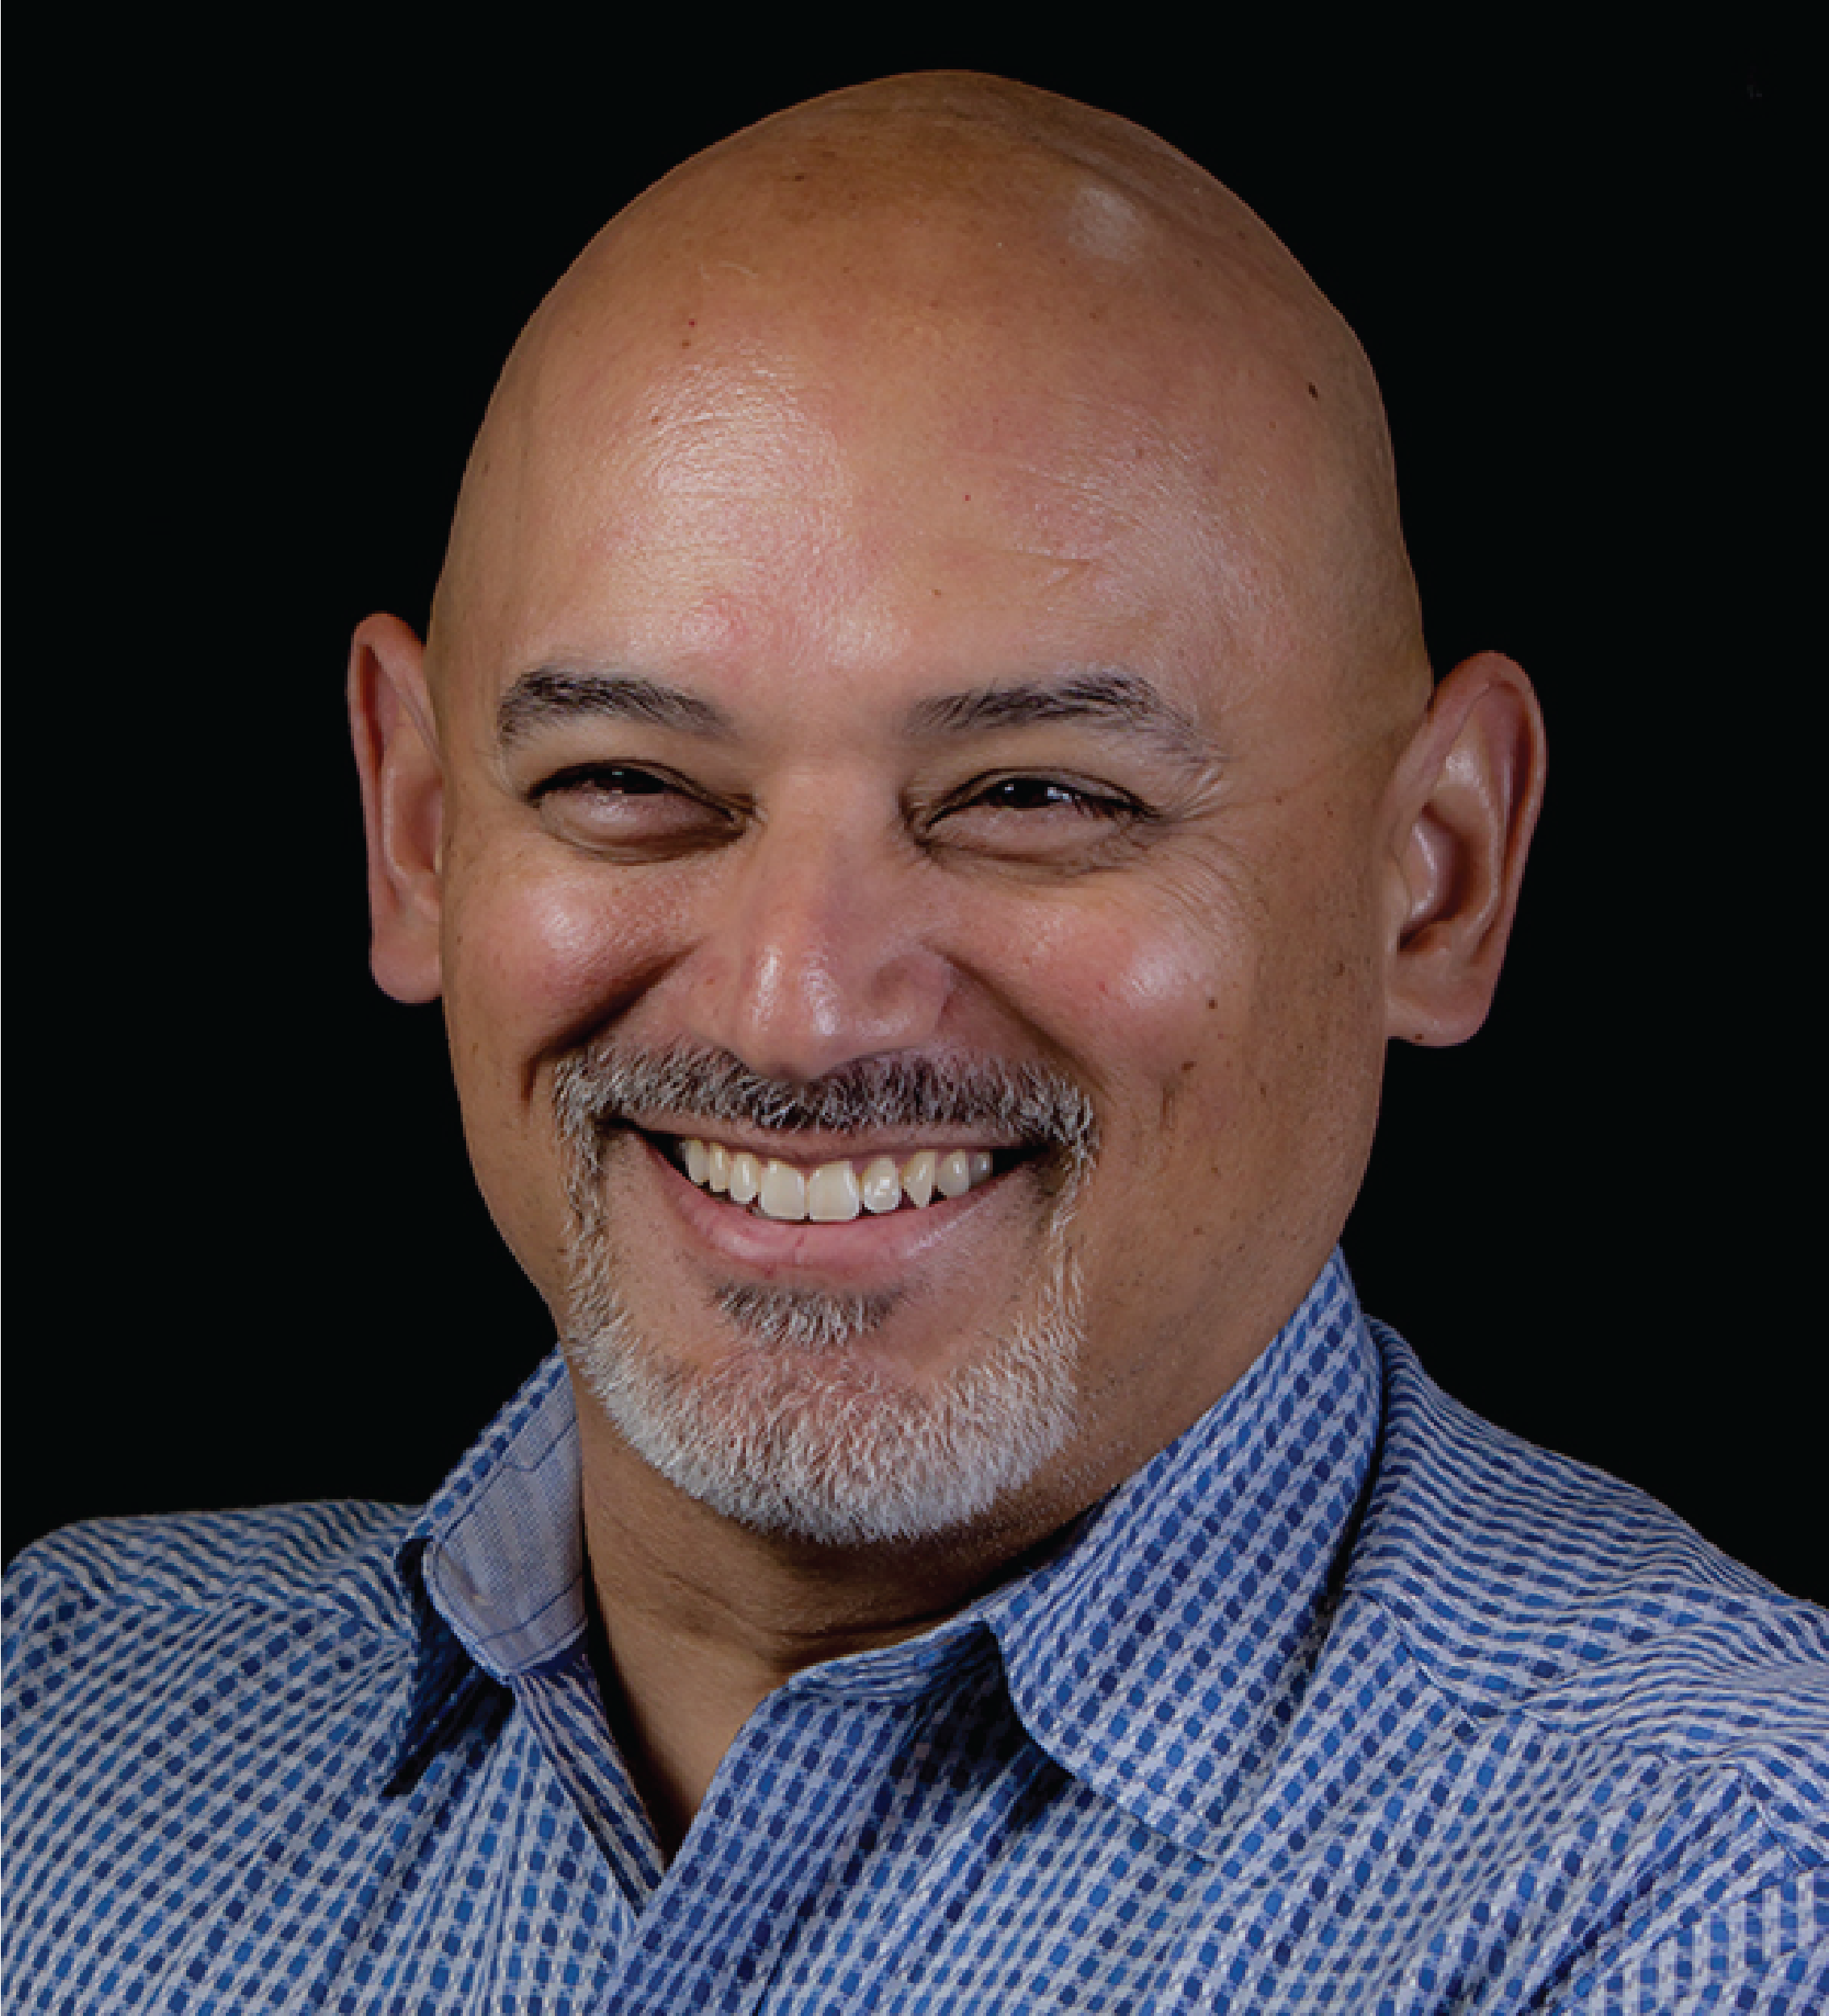 Charles Araujo is a keynote speaker at Cleo Connect 2019